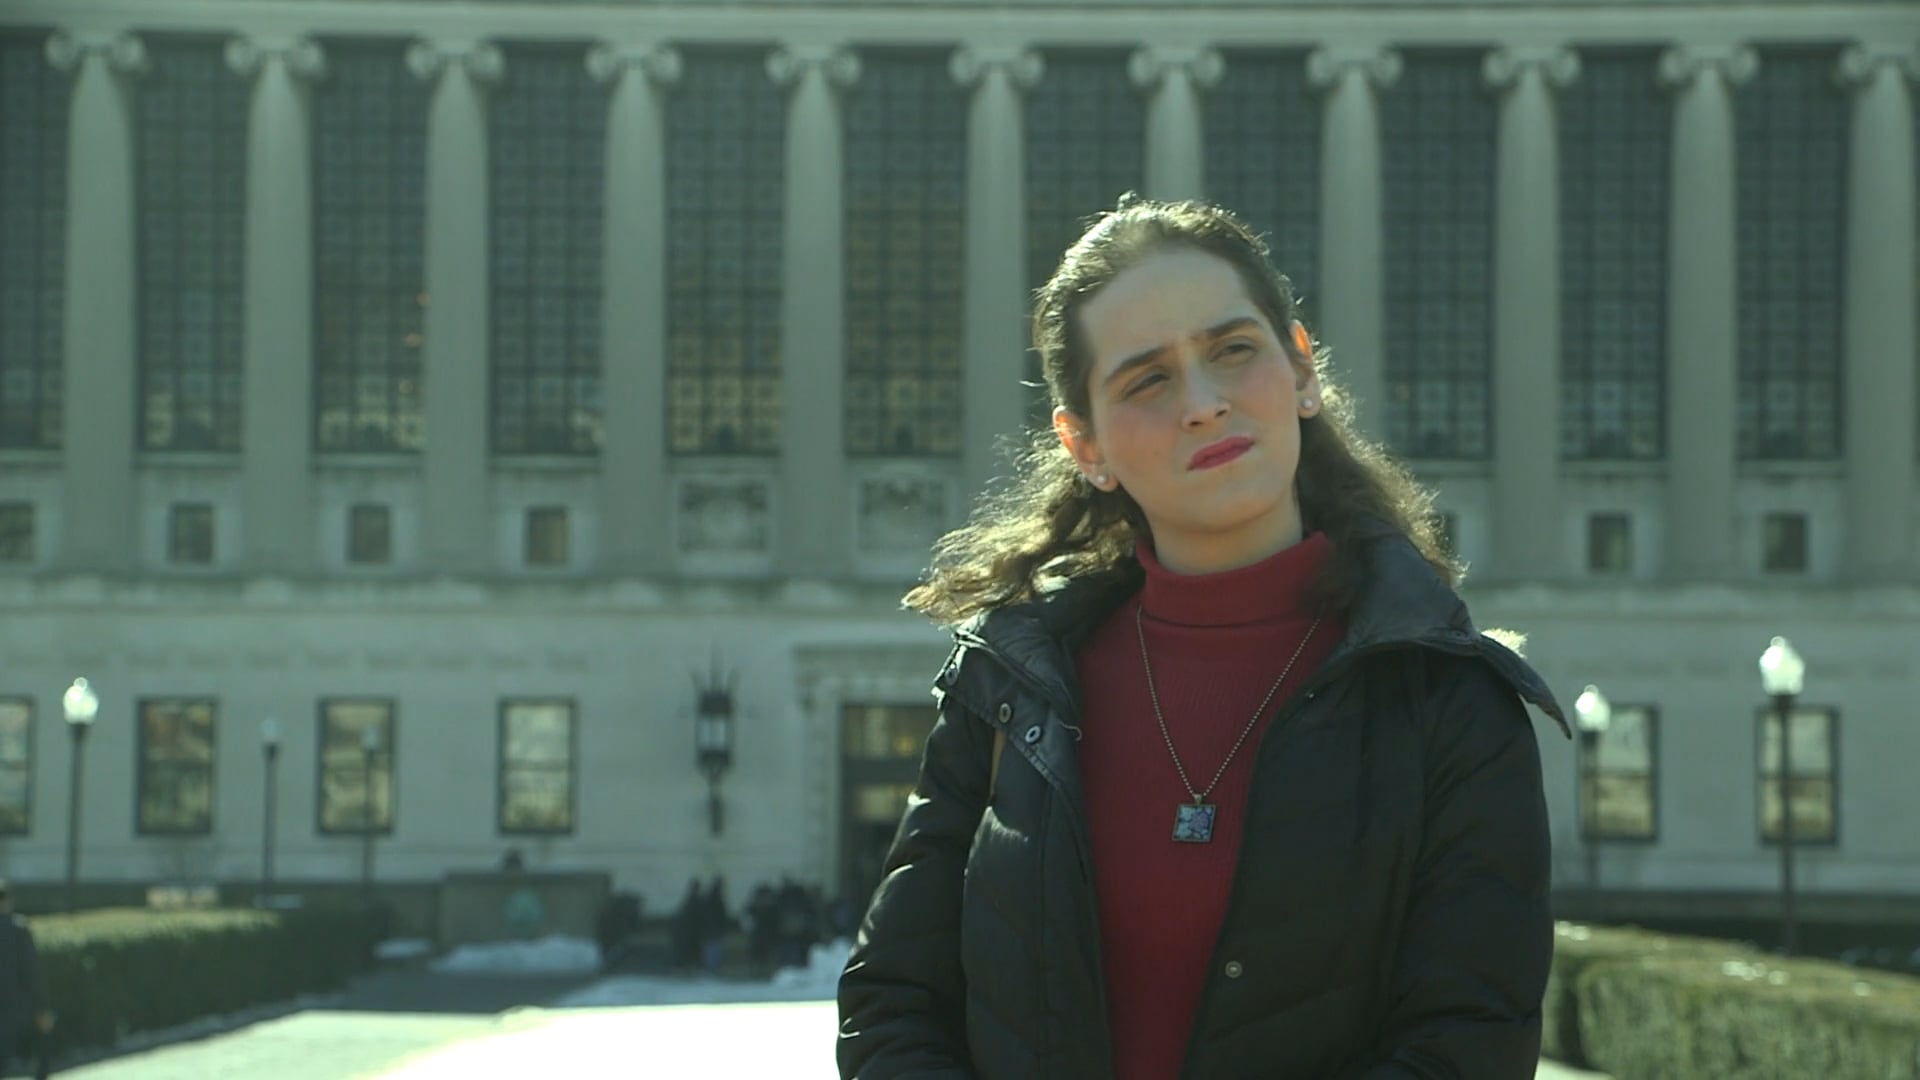 Meet Abby Stein A Hasidic Rabbinical Student From